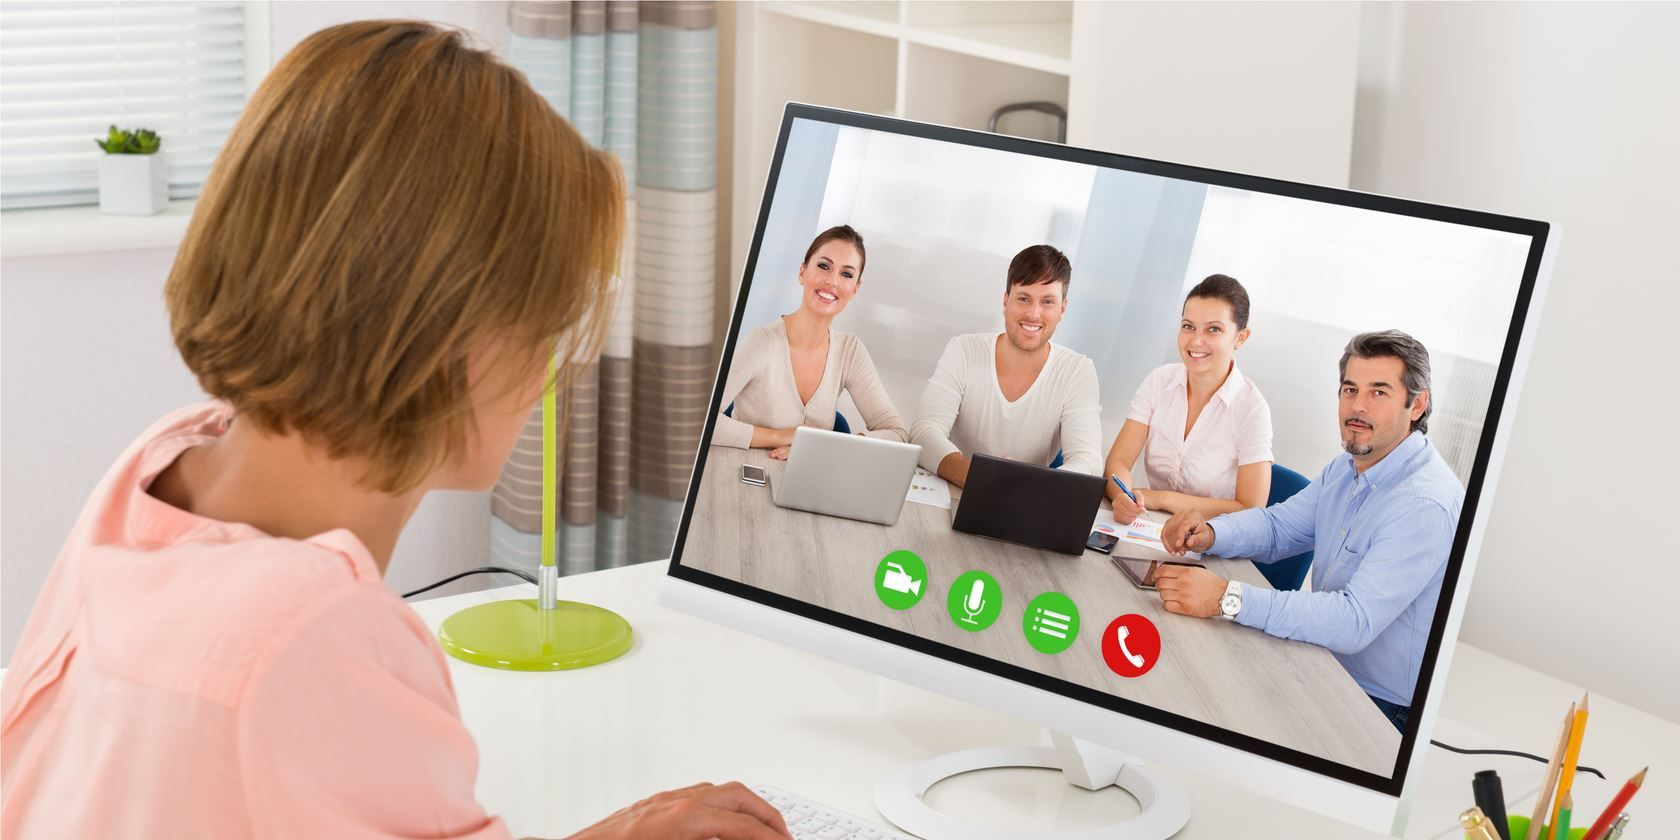 6 Must-Know Apps to Make FREE Group Conference Calls